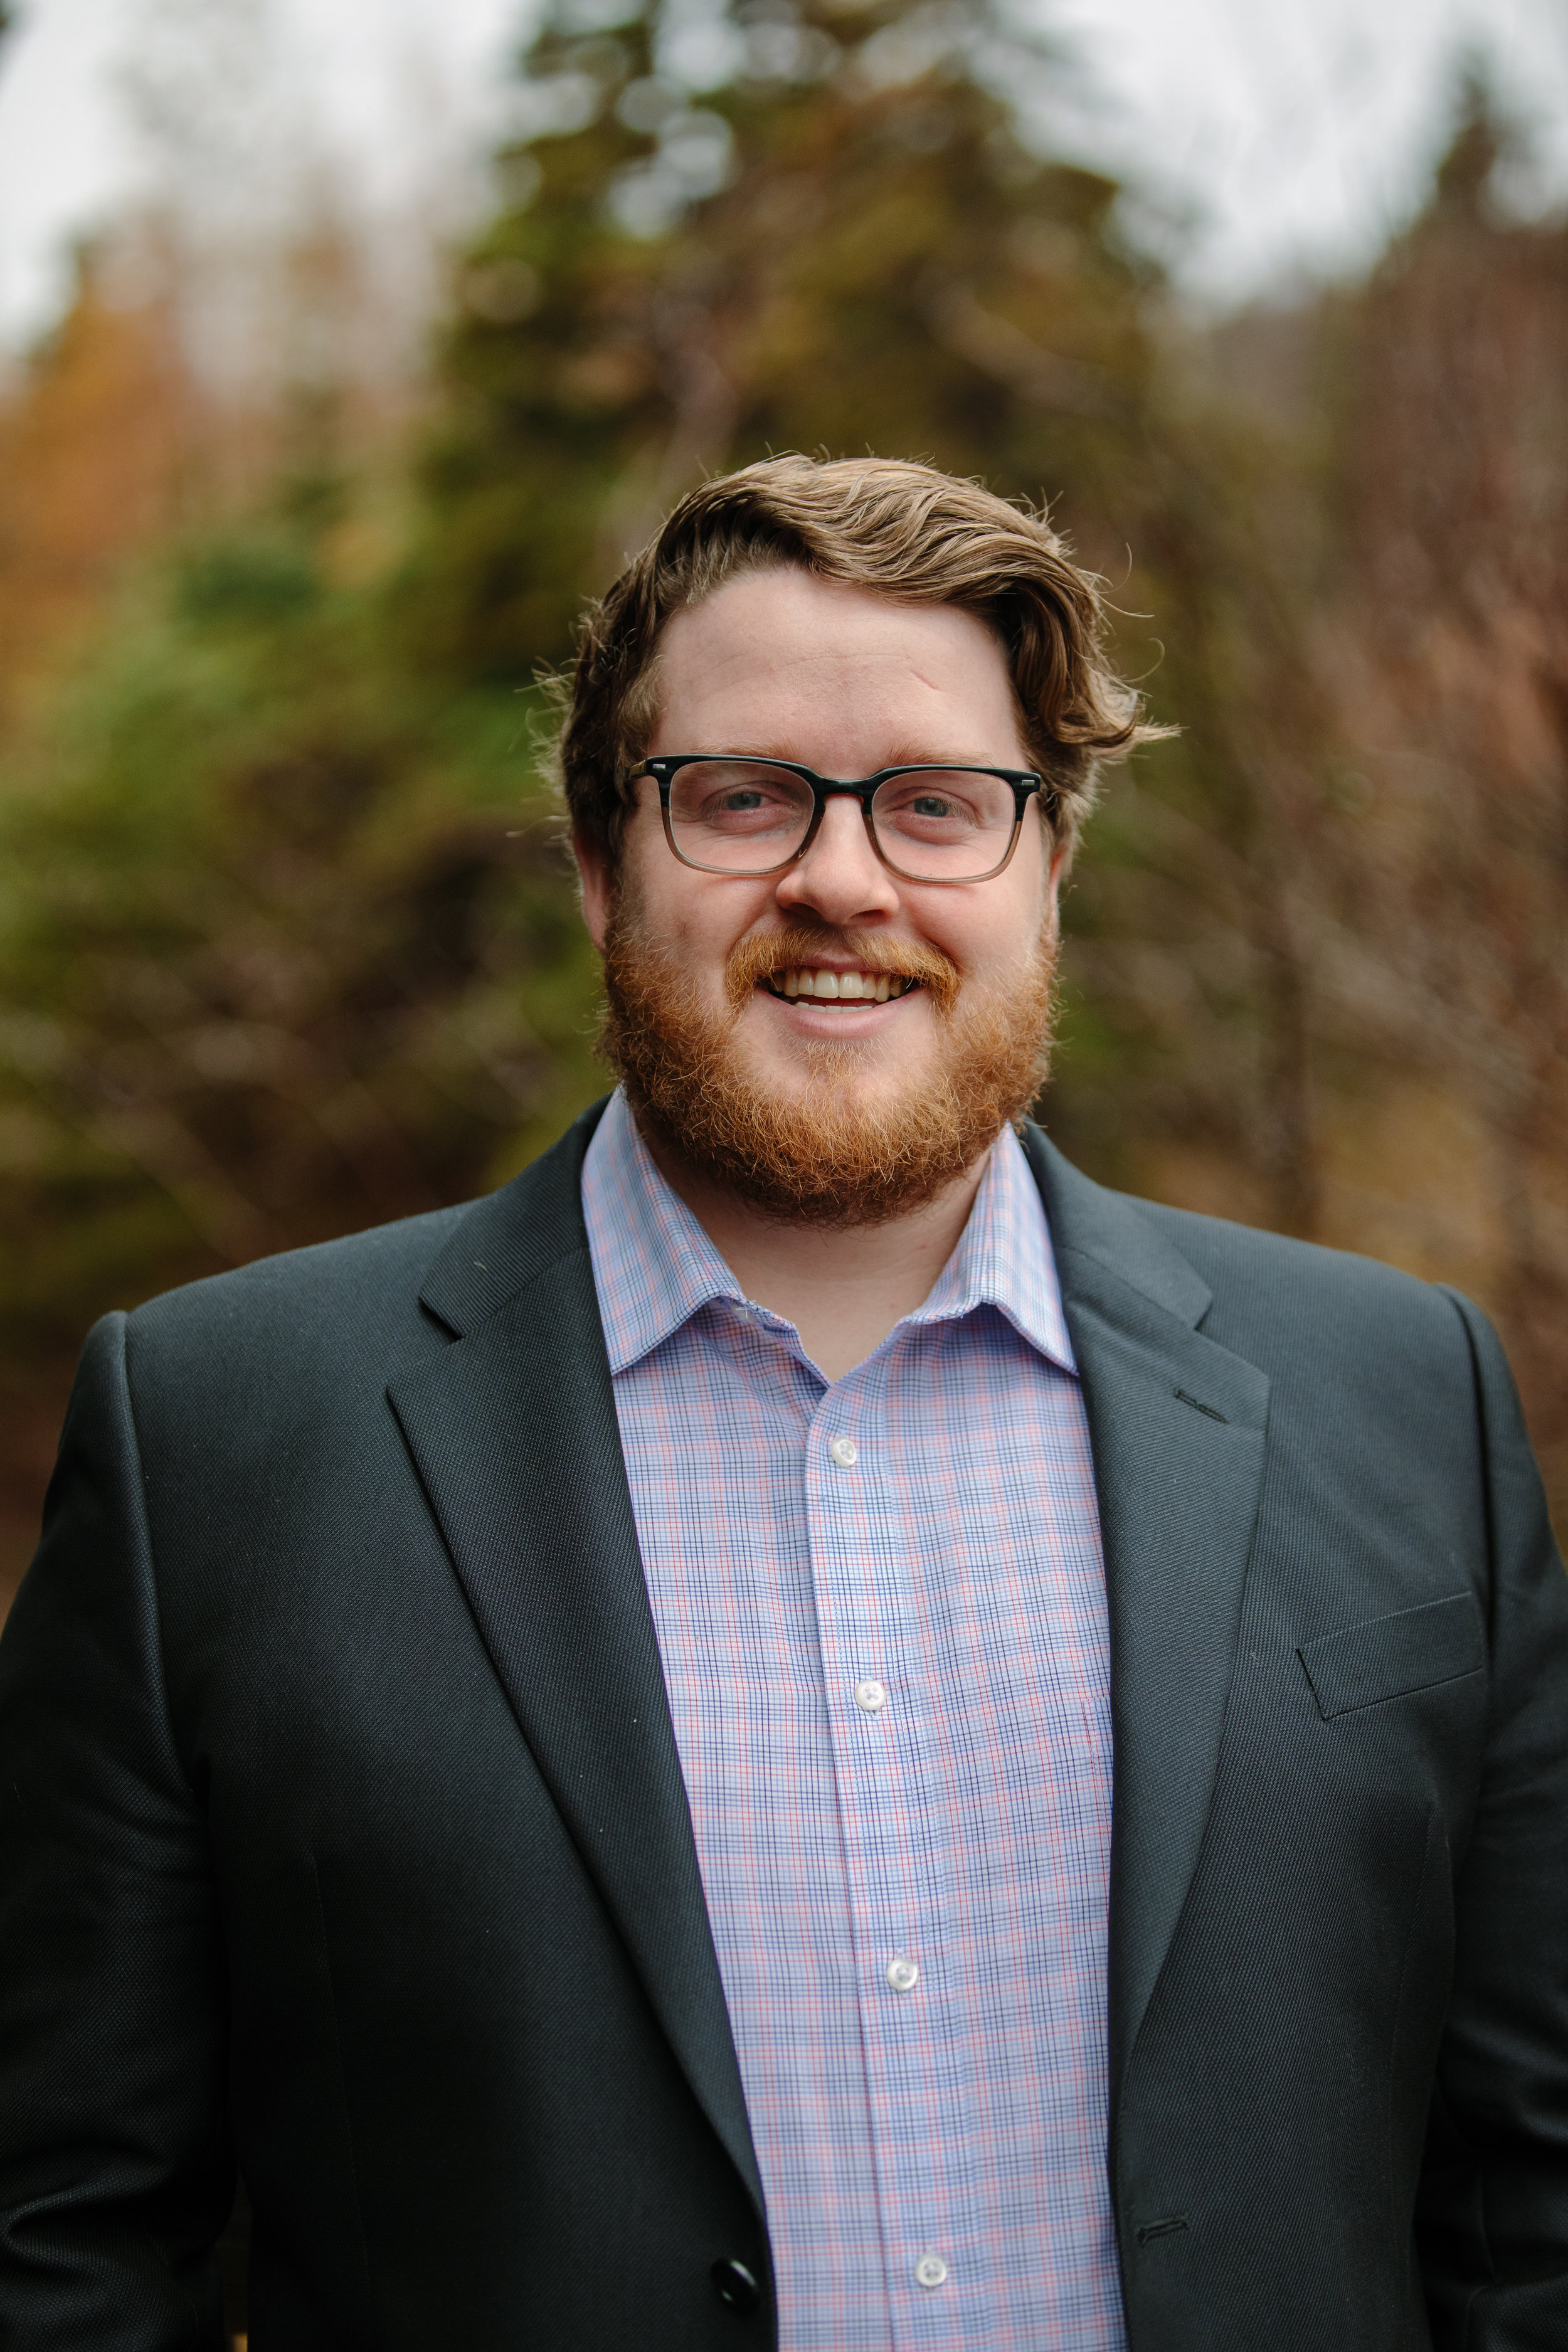 Ethan Doney, Project Manager for Everybody Eats